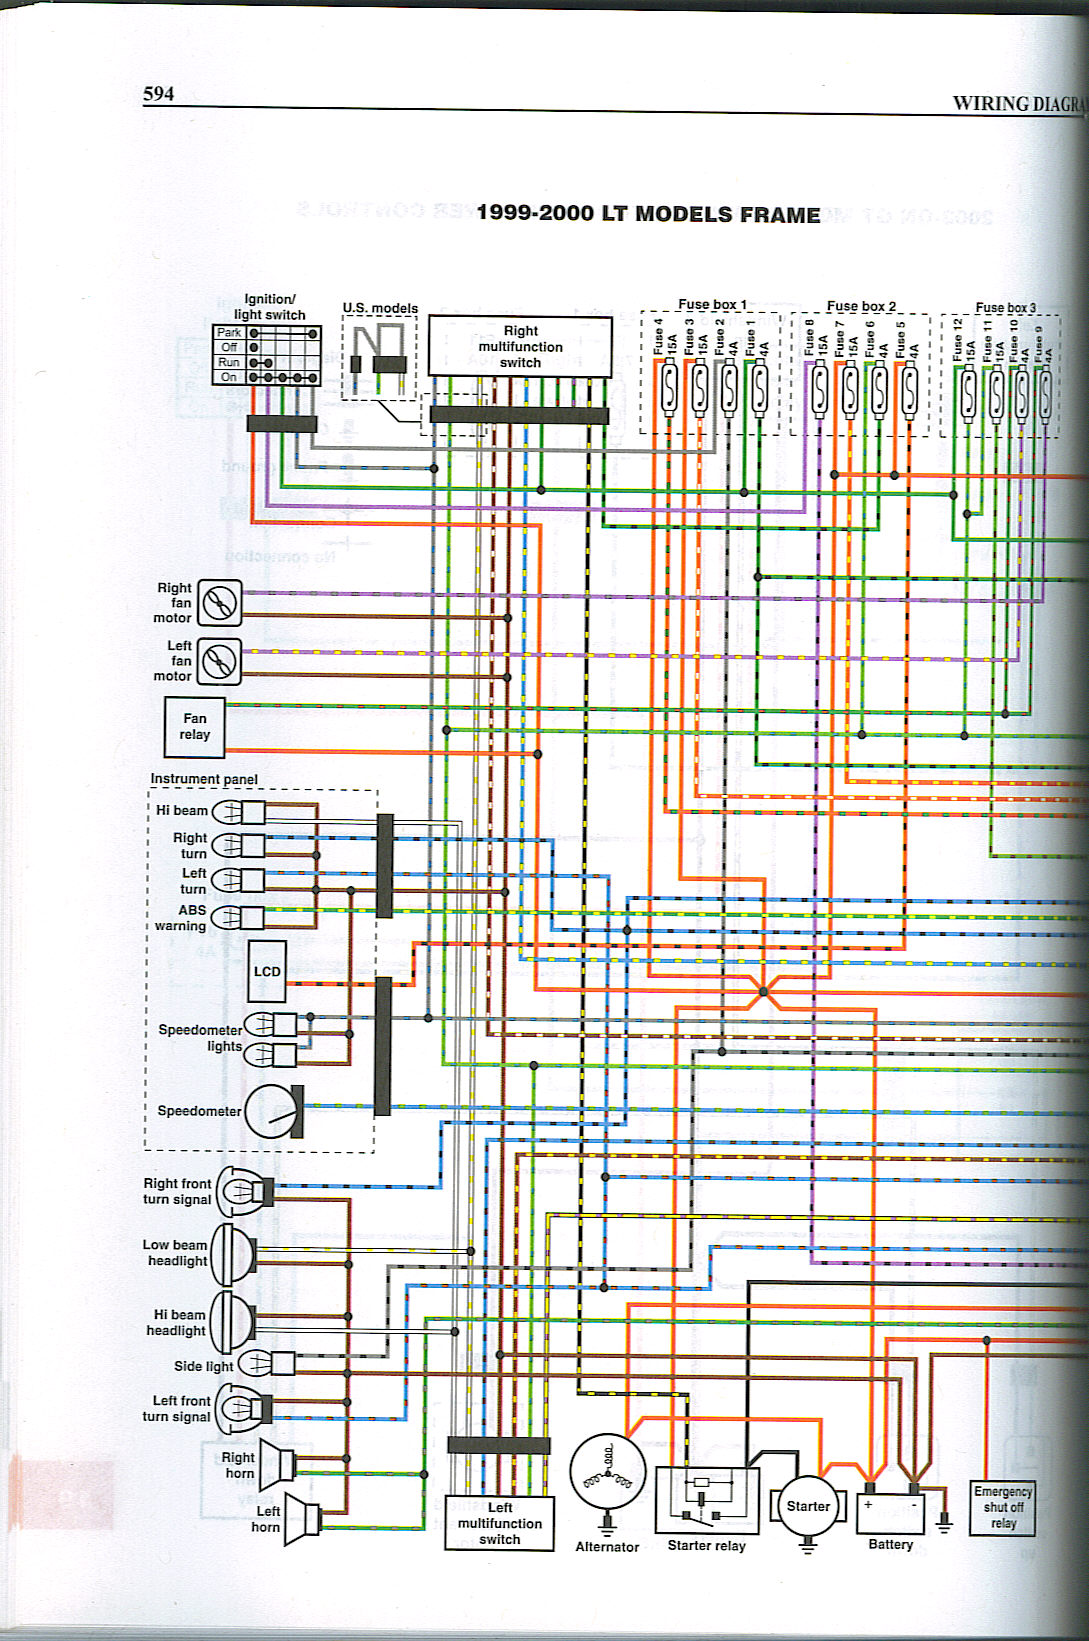 2000 Rc51 Wiring Diagram